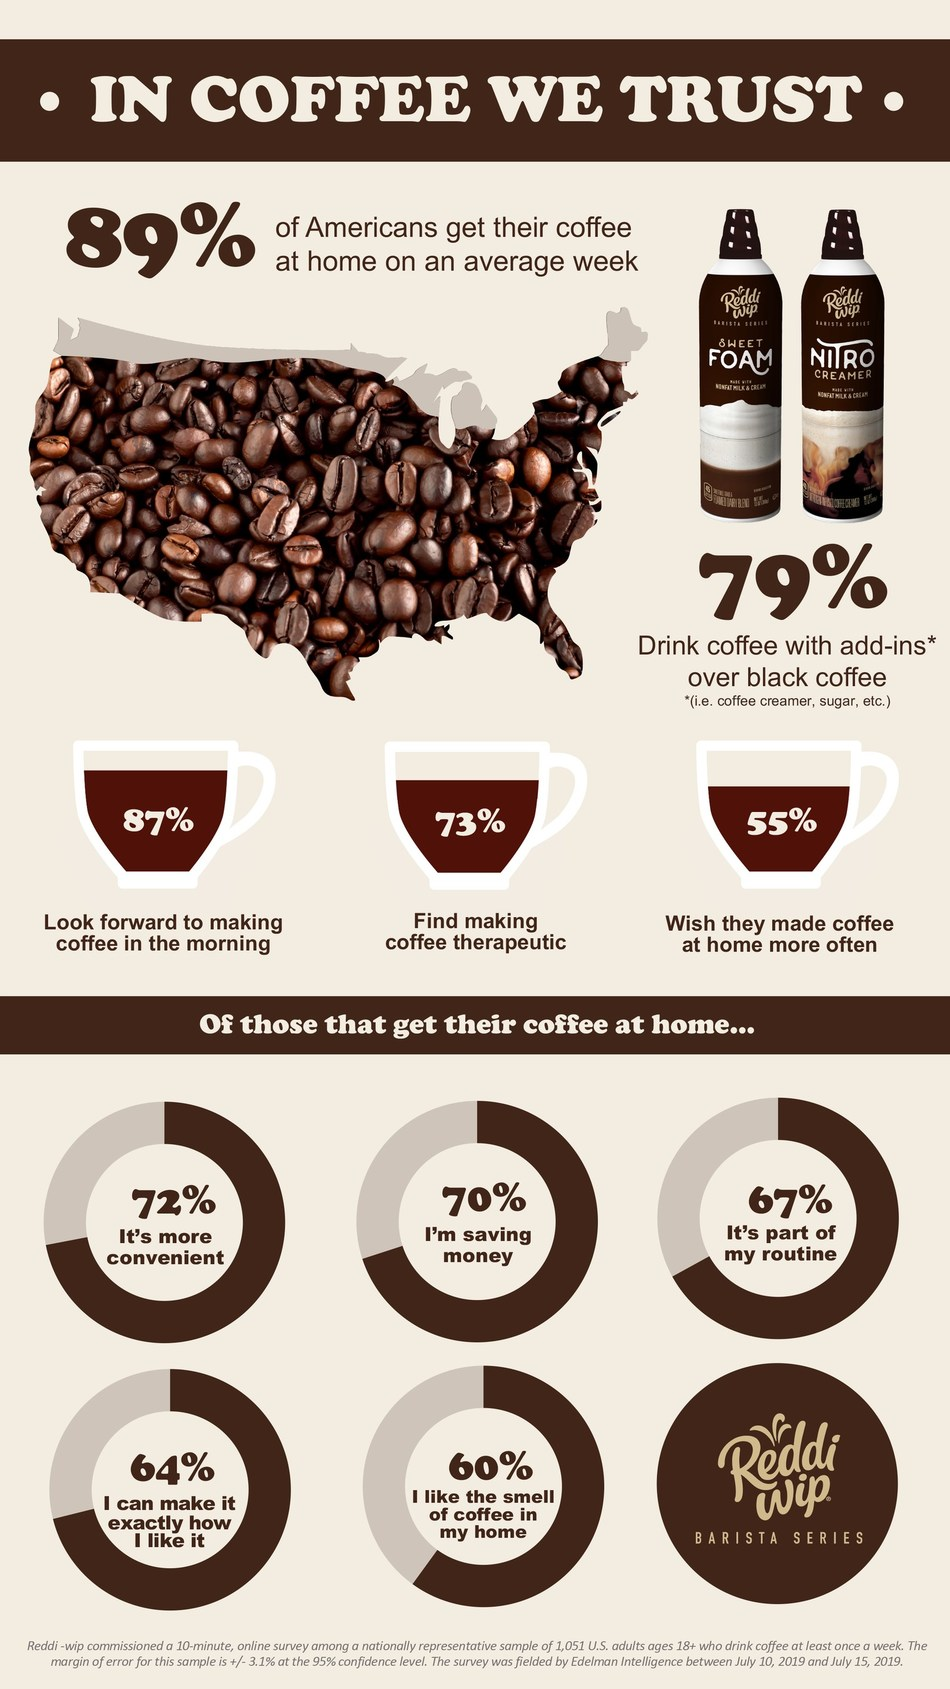 A new survey from Reddi-wip, the leader in the refrigerated aerosol whipped topping category, found that despite the booming $45.4 billion coffee shop industry in the U.S., Americans are still getting their caffeine fix at home. In an average week, 89 percent of Americans get their coffee from home, citing convenience, cost and customizability as primary decision-making factors.